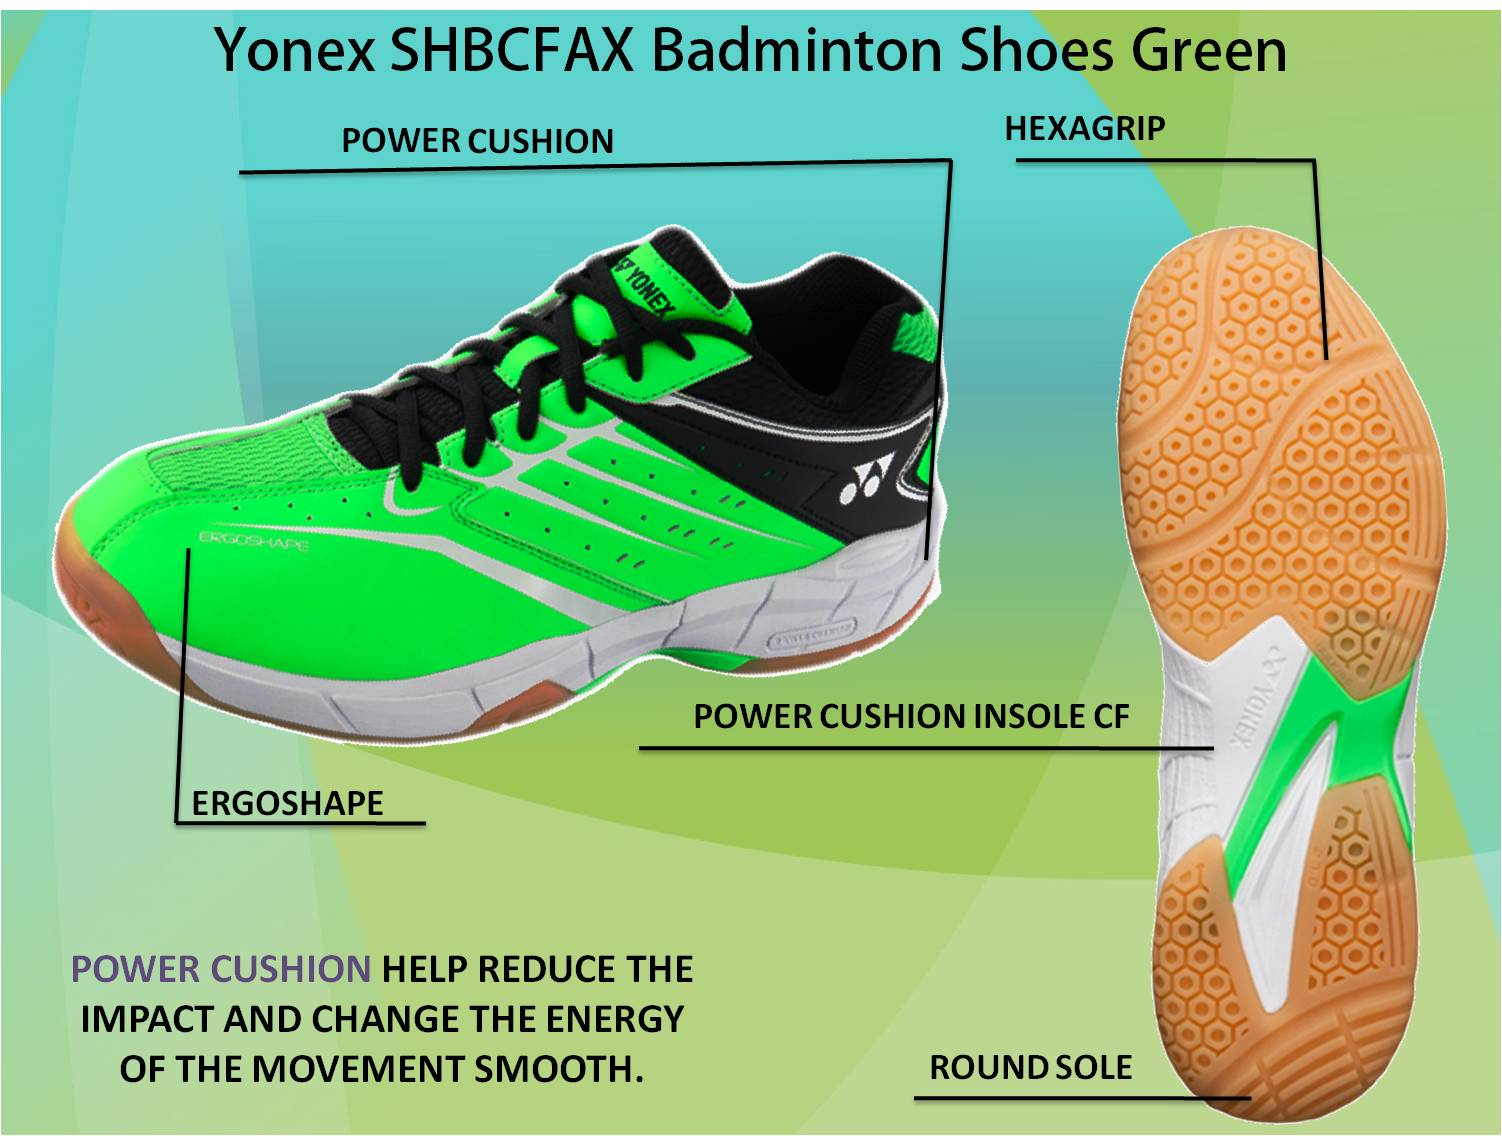 Yonex SHBCFAX Badminton Shoes Green